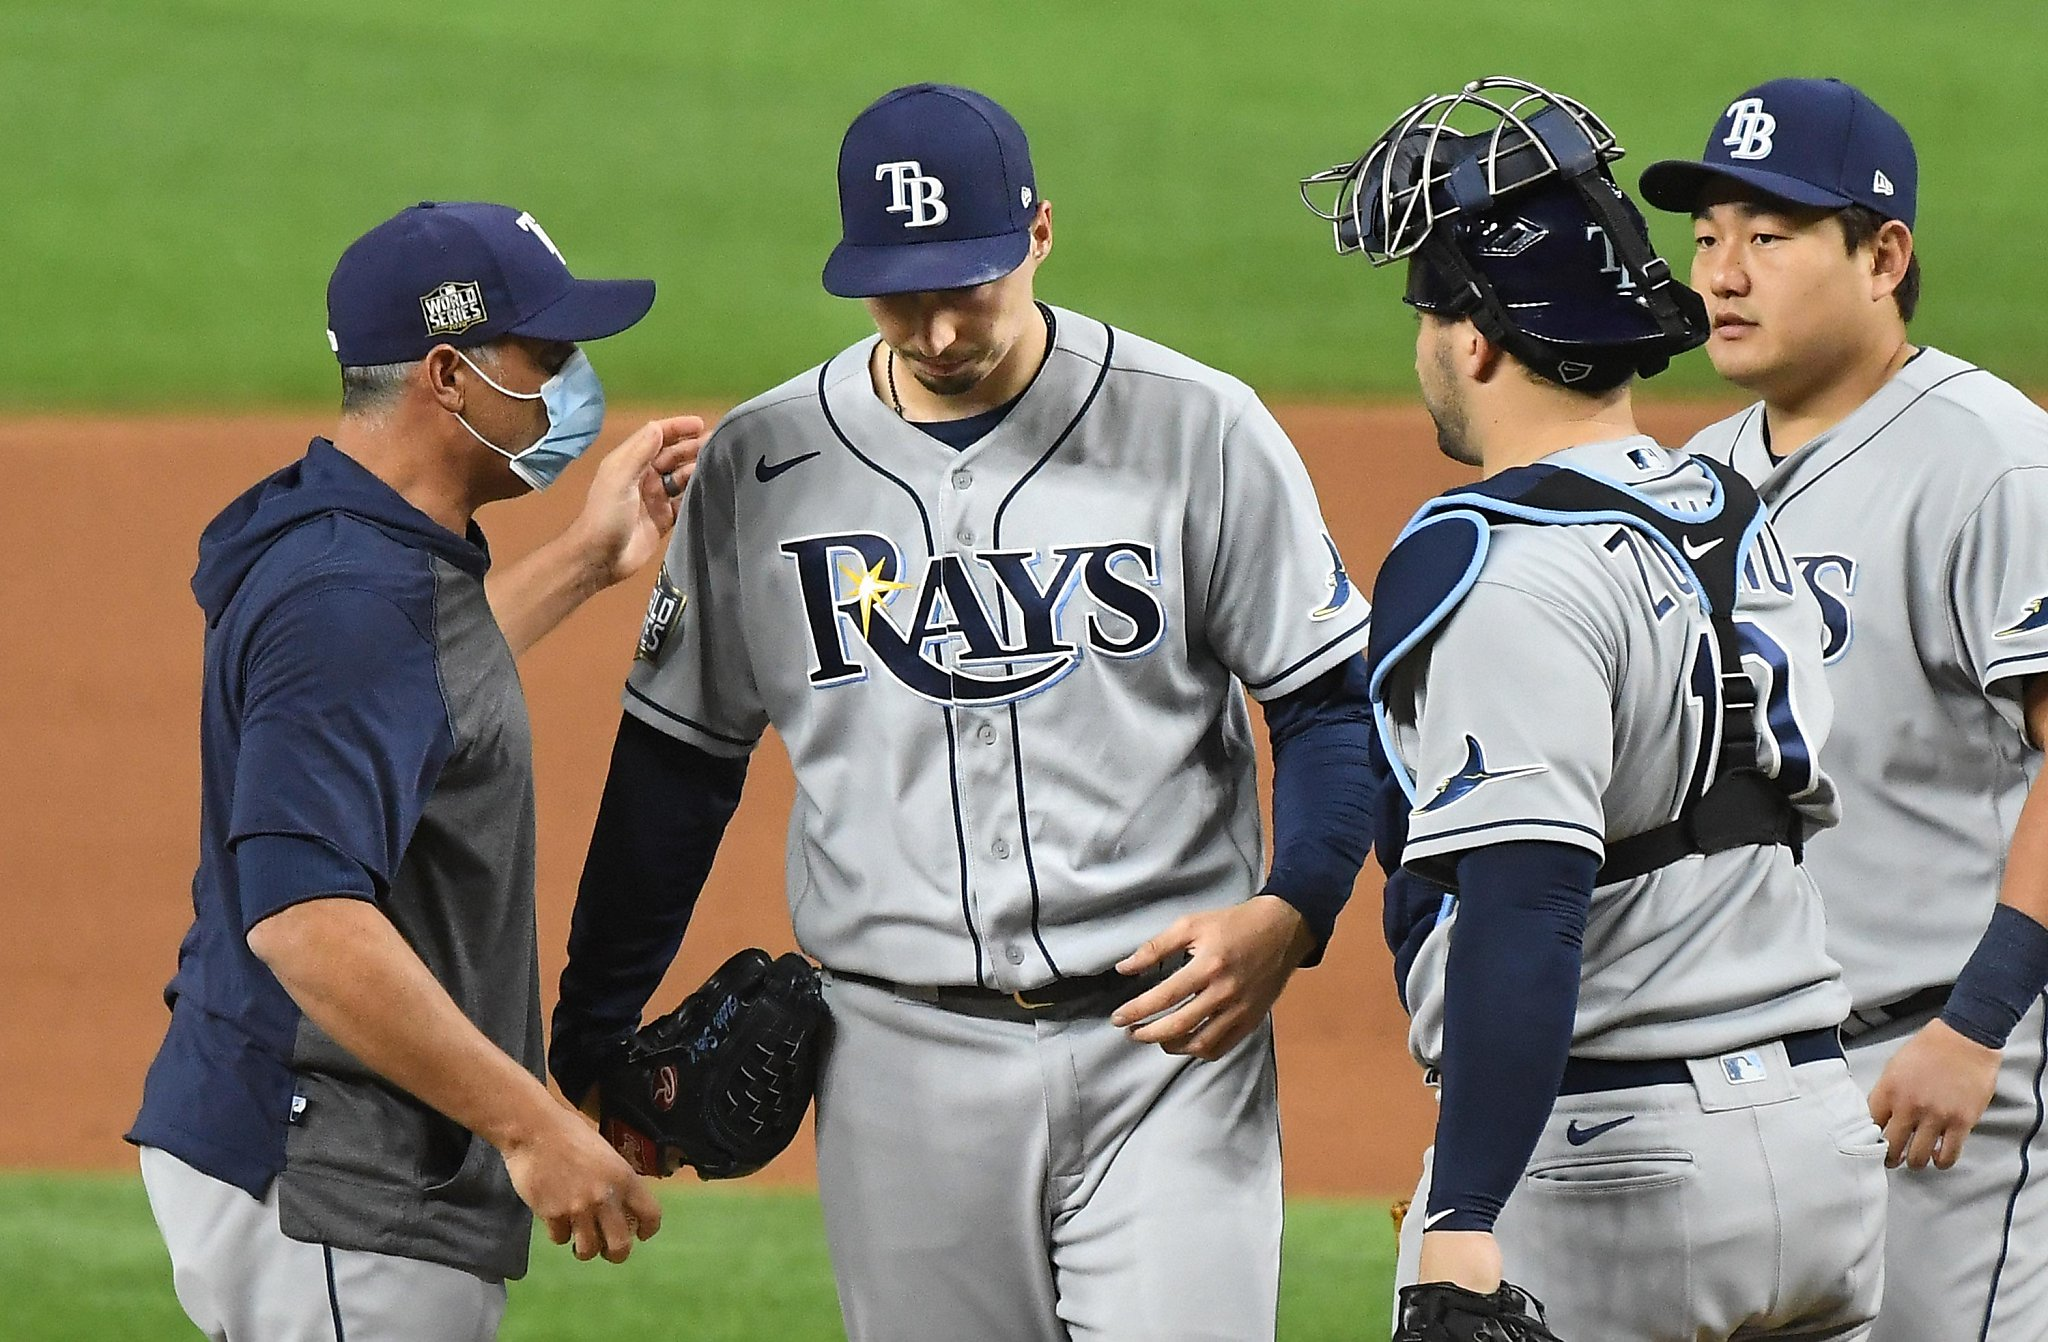 Rays' World Series Game 6 debacle: When computers ruled, and baseball lost  - SFChronicle.com